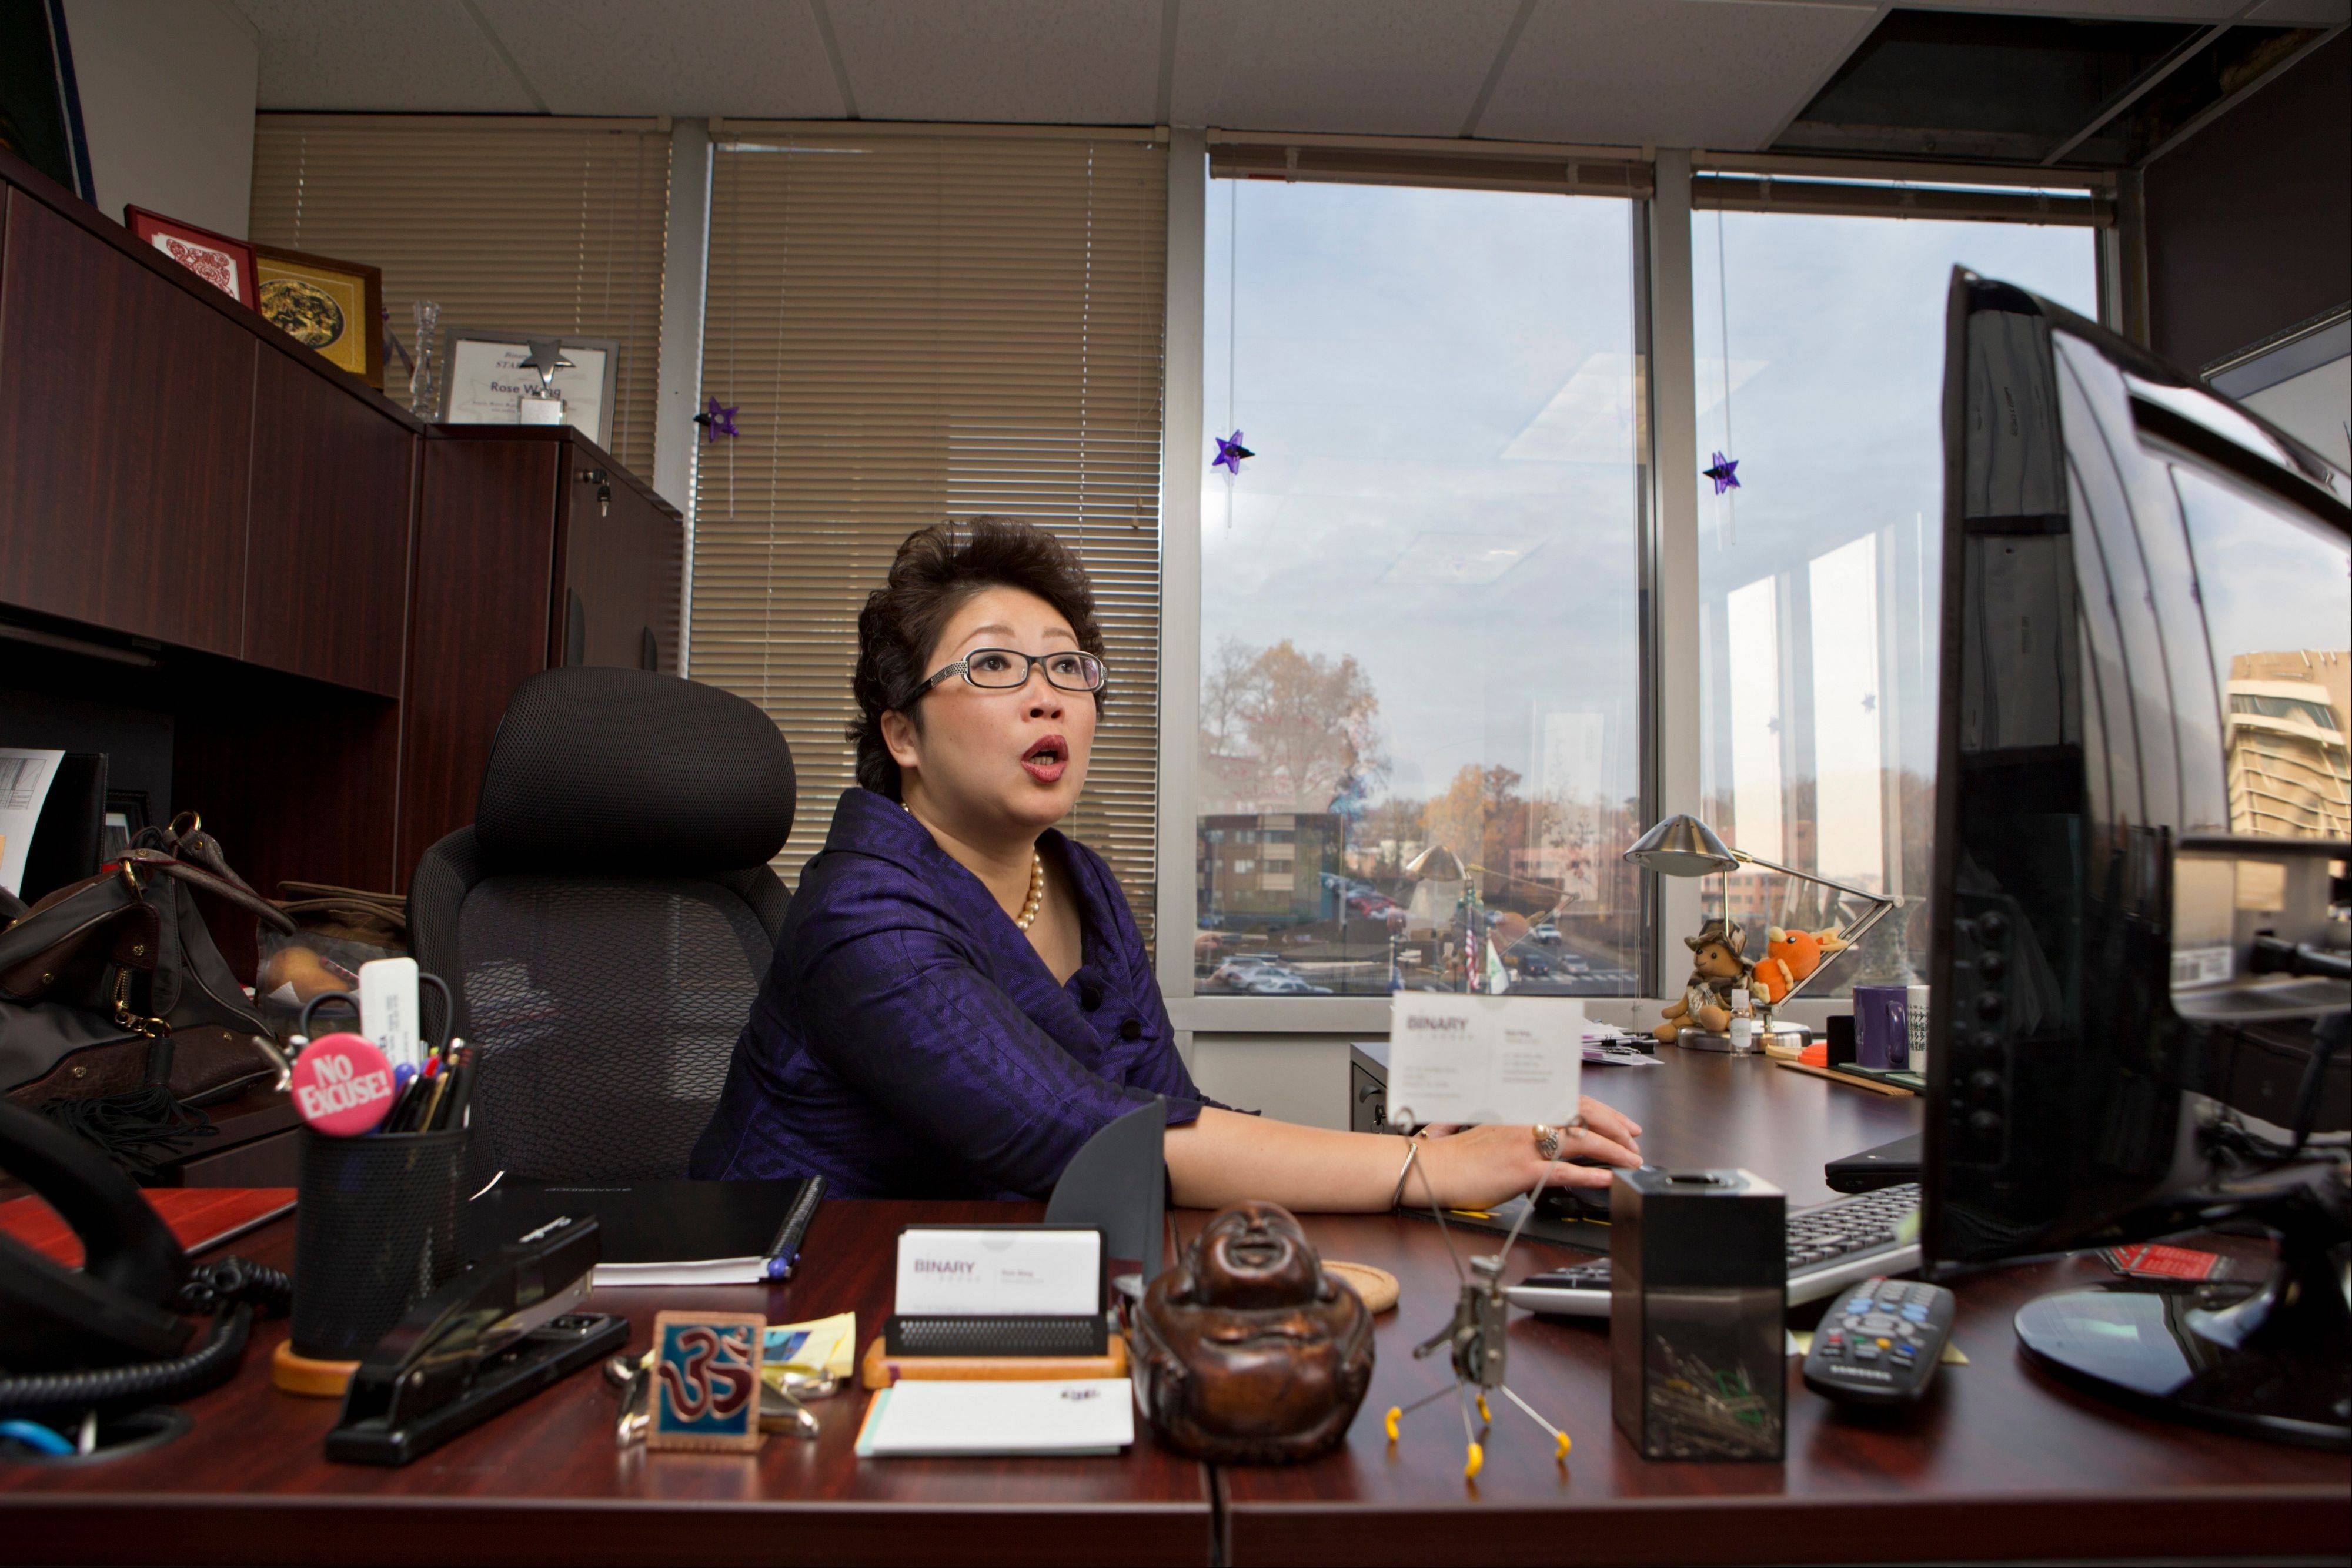 Rose Wang, owner of Binary Group, works in her office in Rosslyn, Va. Small businesses with 50 workers or more will be required to provide health insurance Jan. 1, 2014. Wang, who has about 70 employees, will instead have to decide whether she'll cover them, or pay a penalty for not providing insurance.